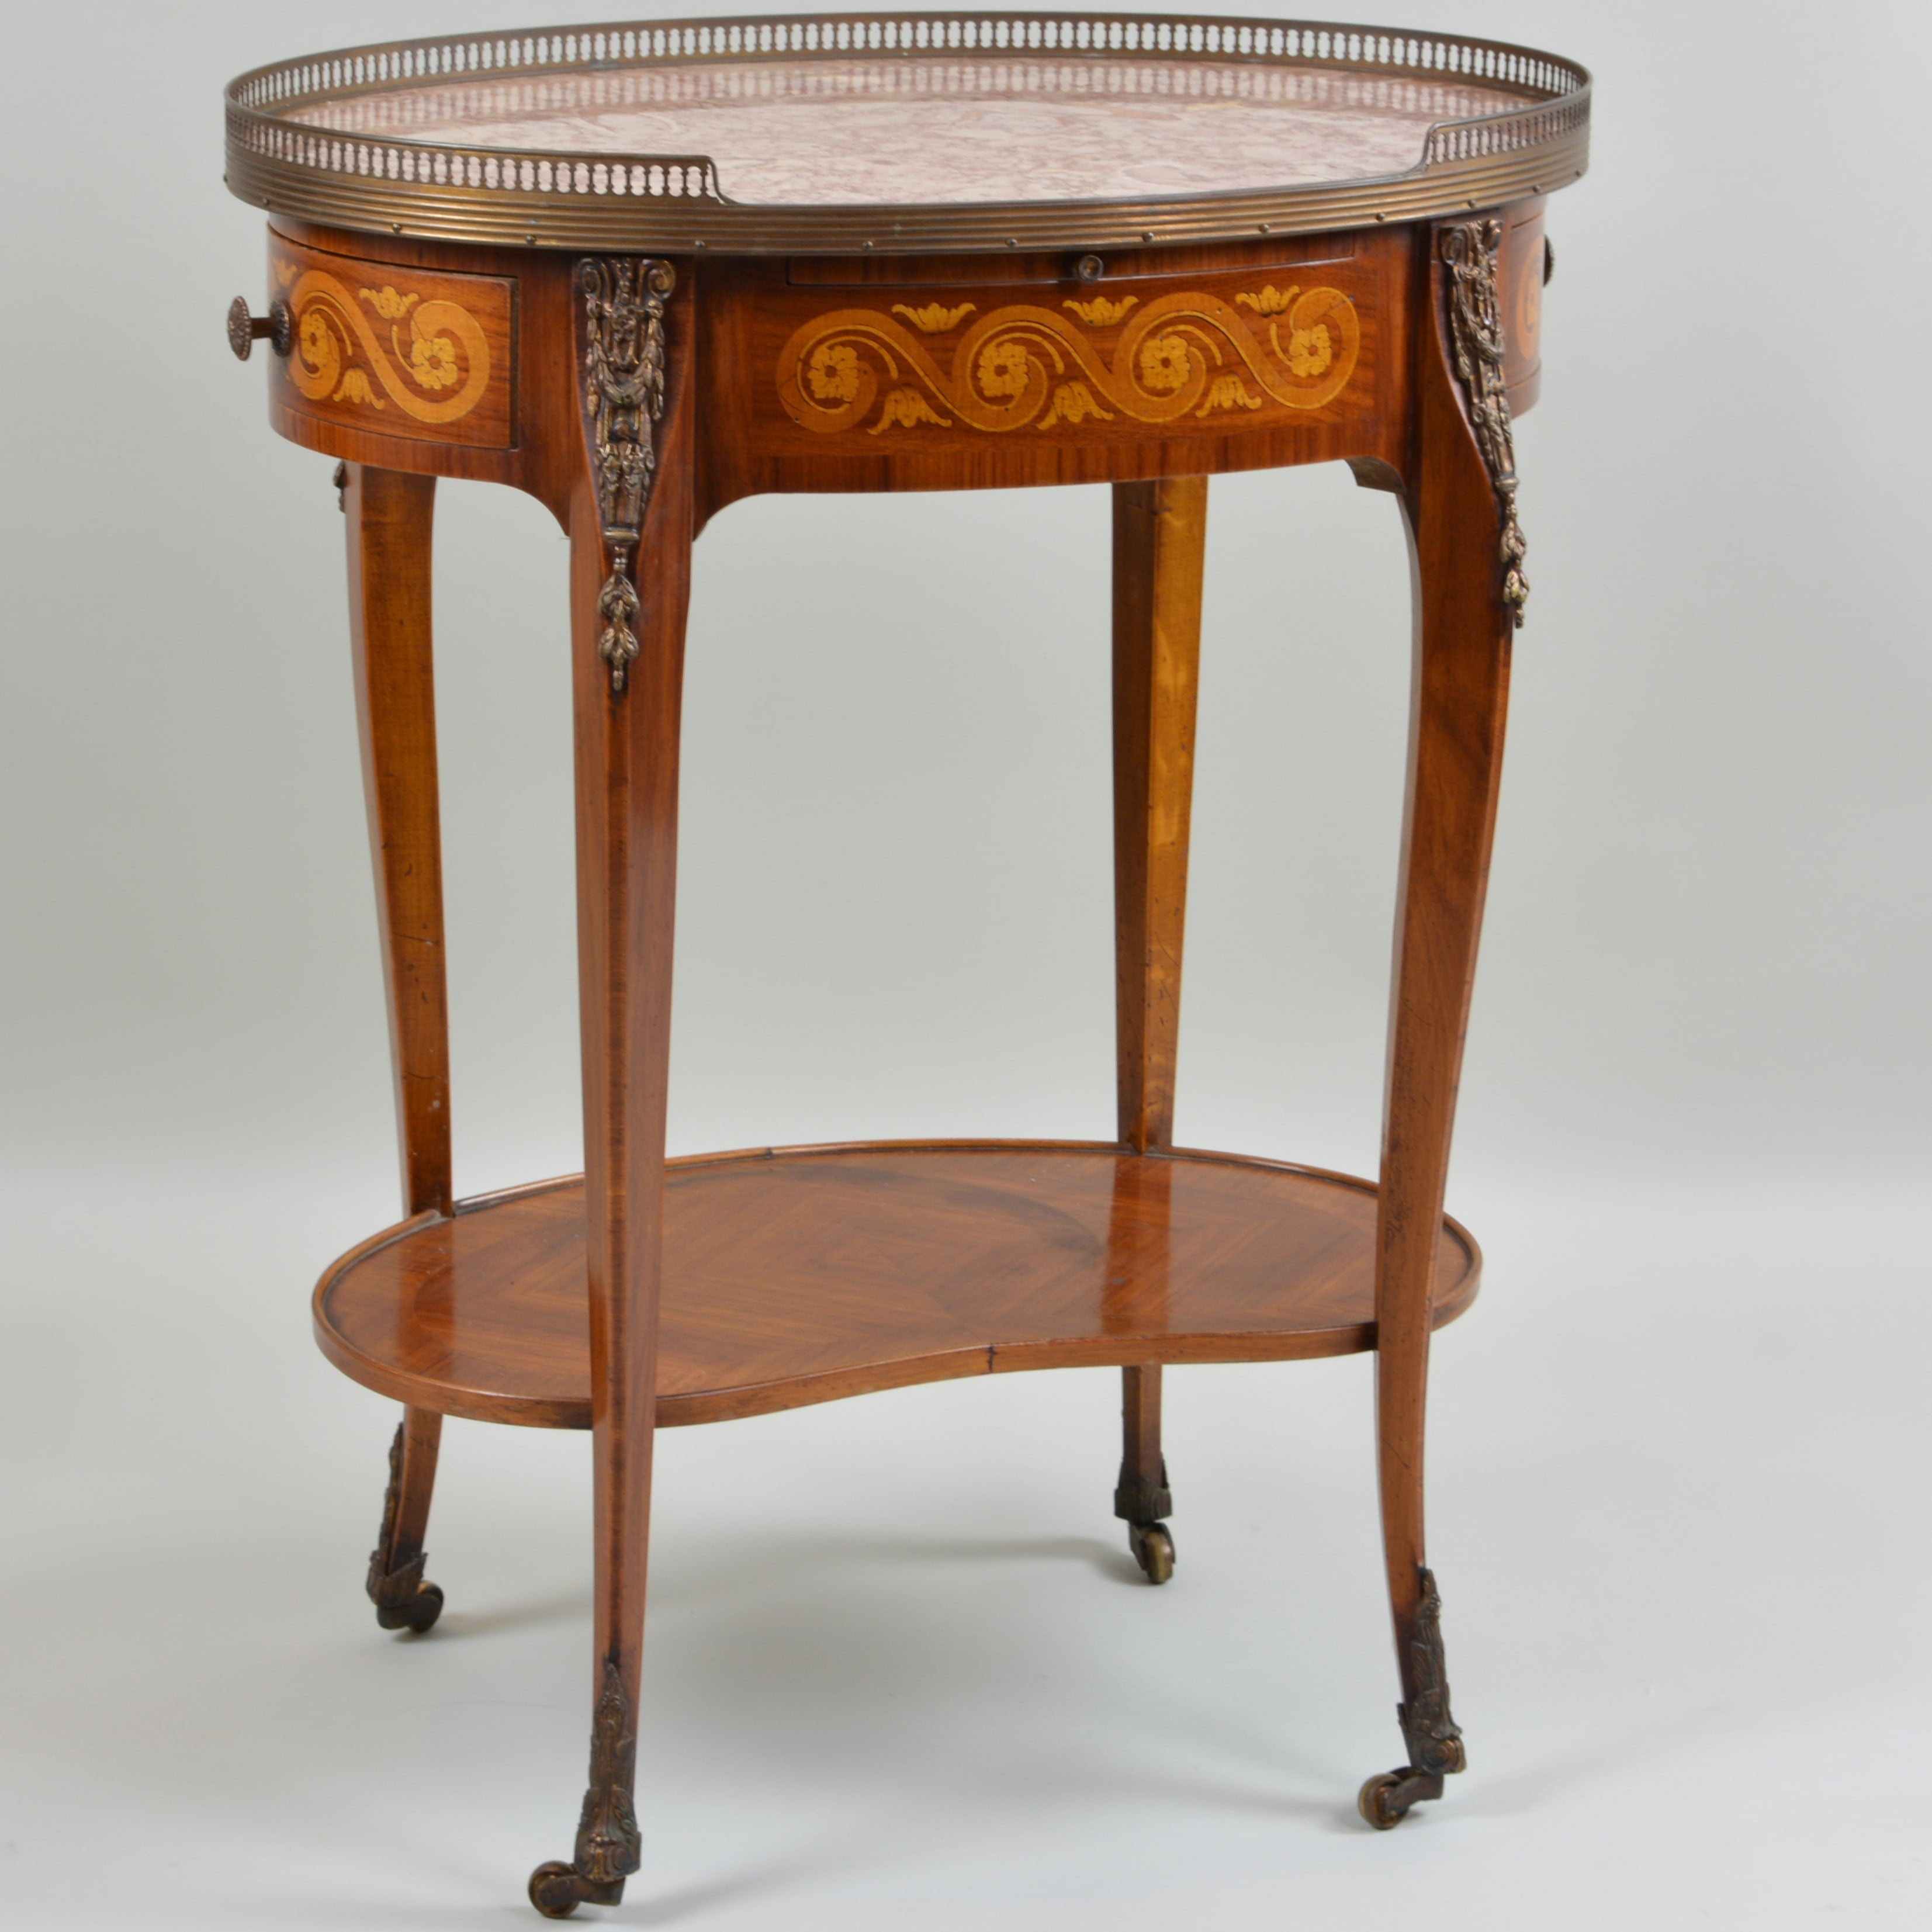 Early 19th Century Marble Top Oval Side Table